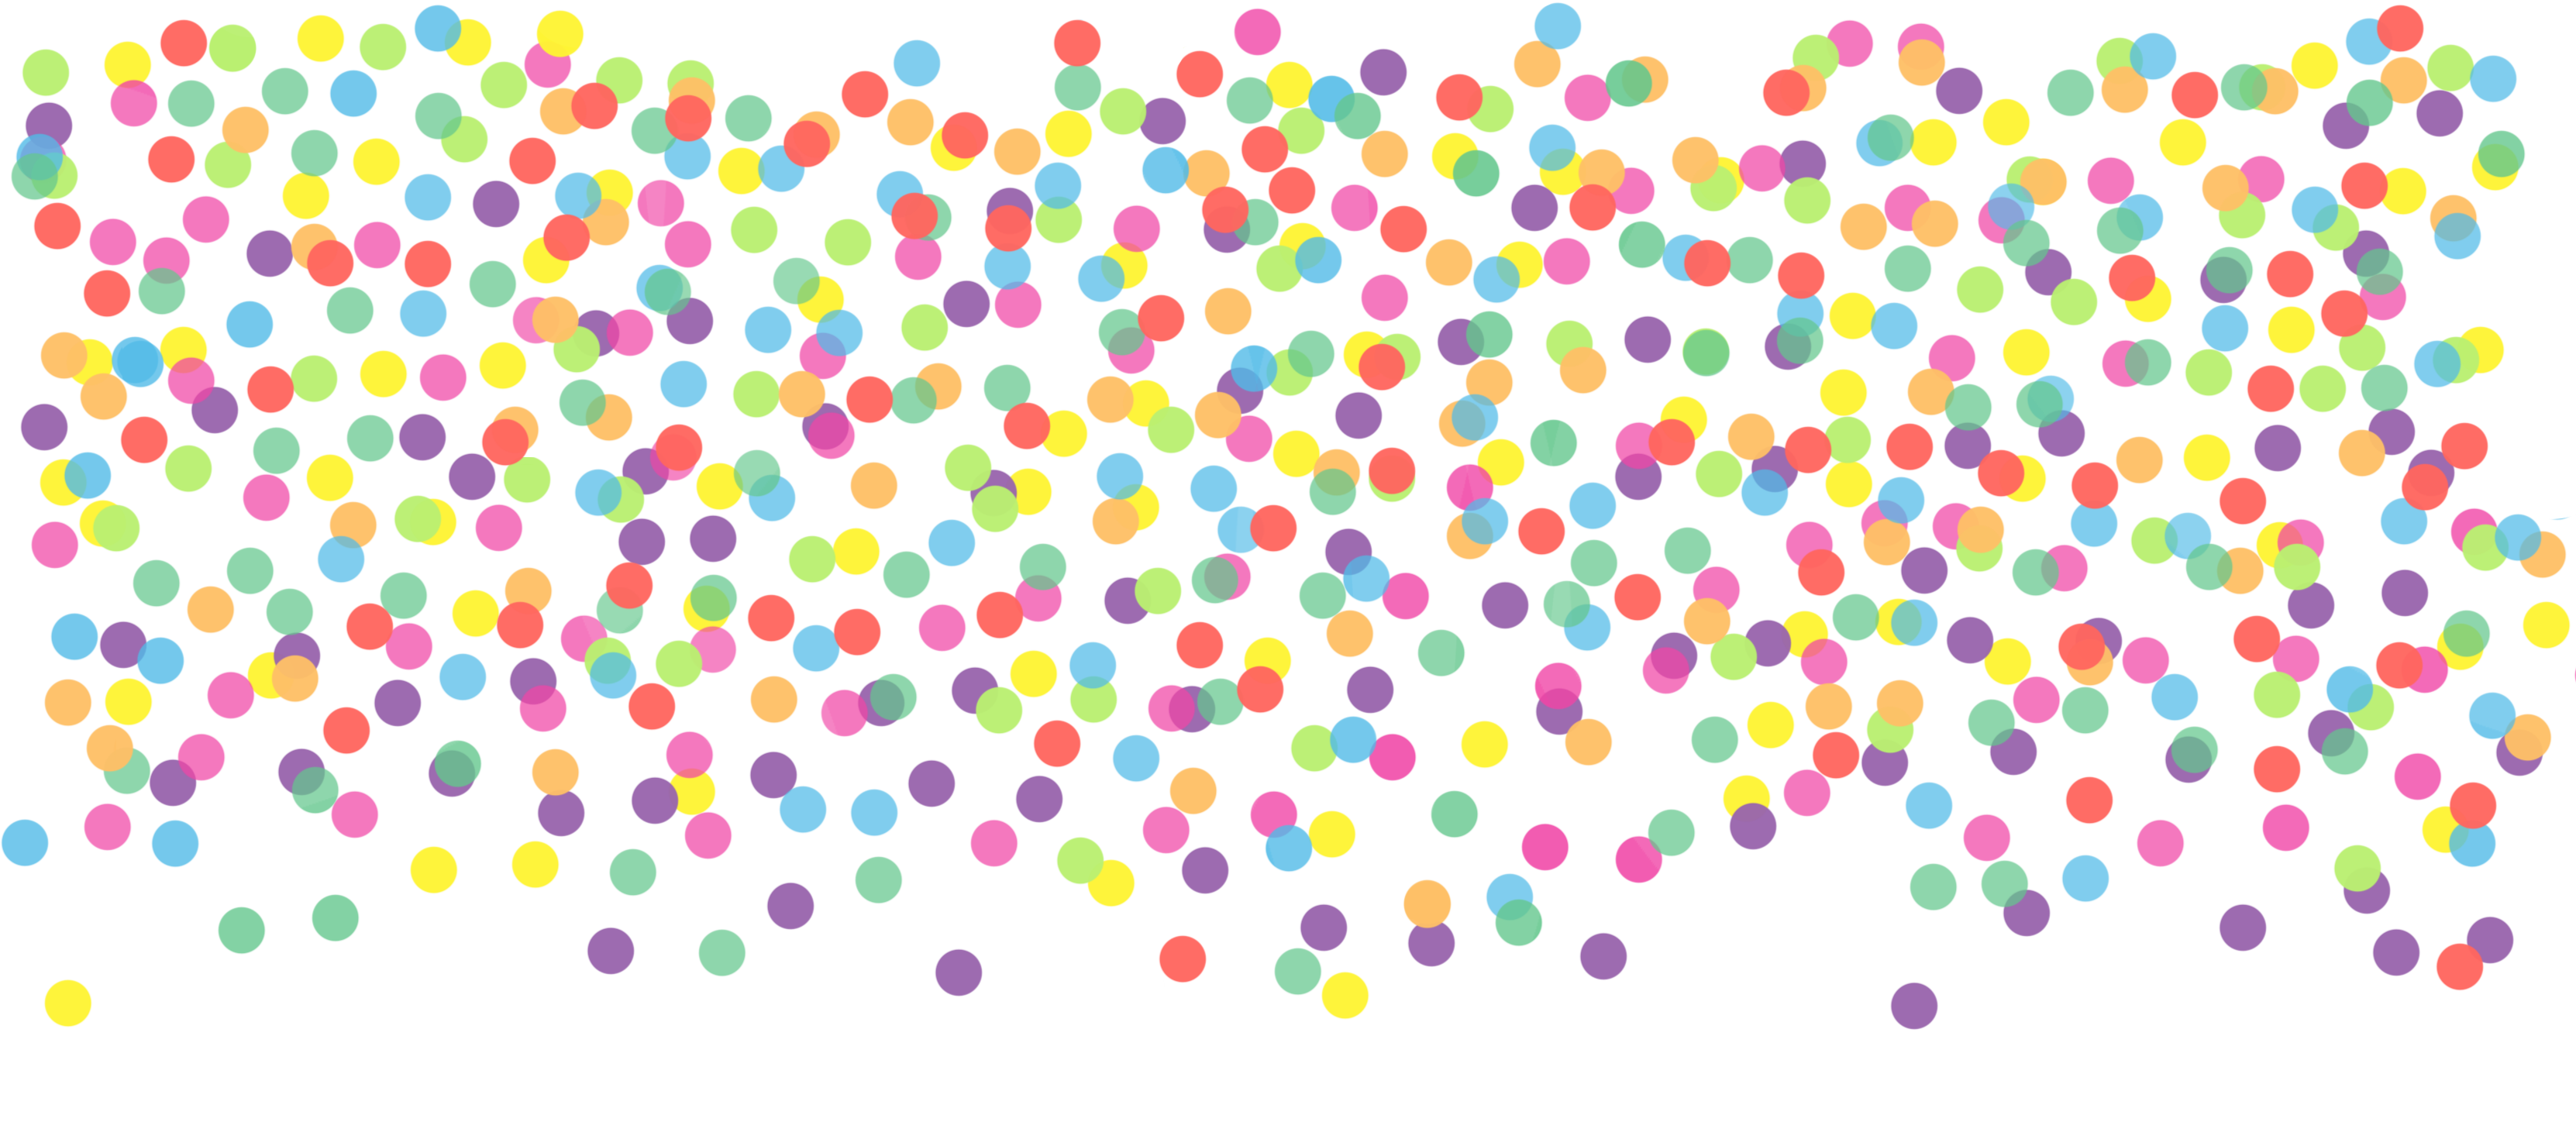 Sprinkles falling png. Pbl confetti dots rainbow